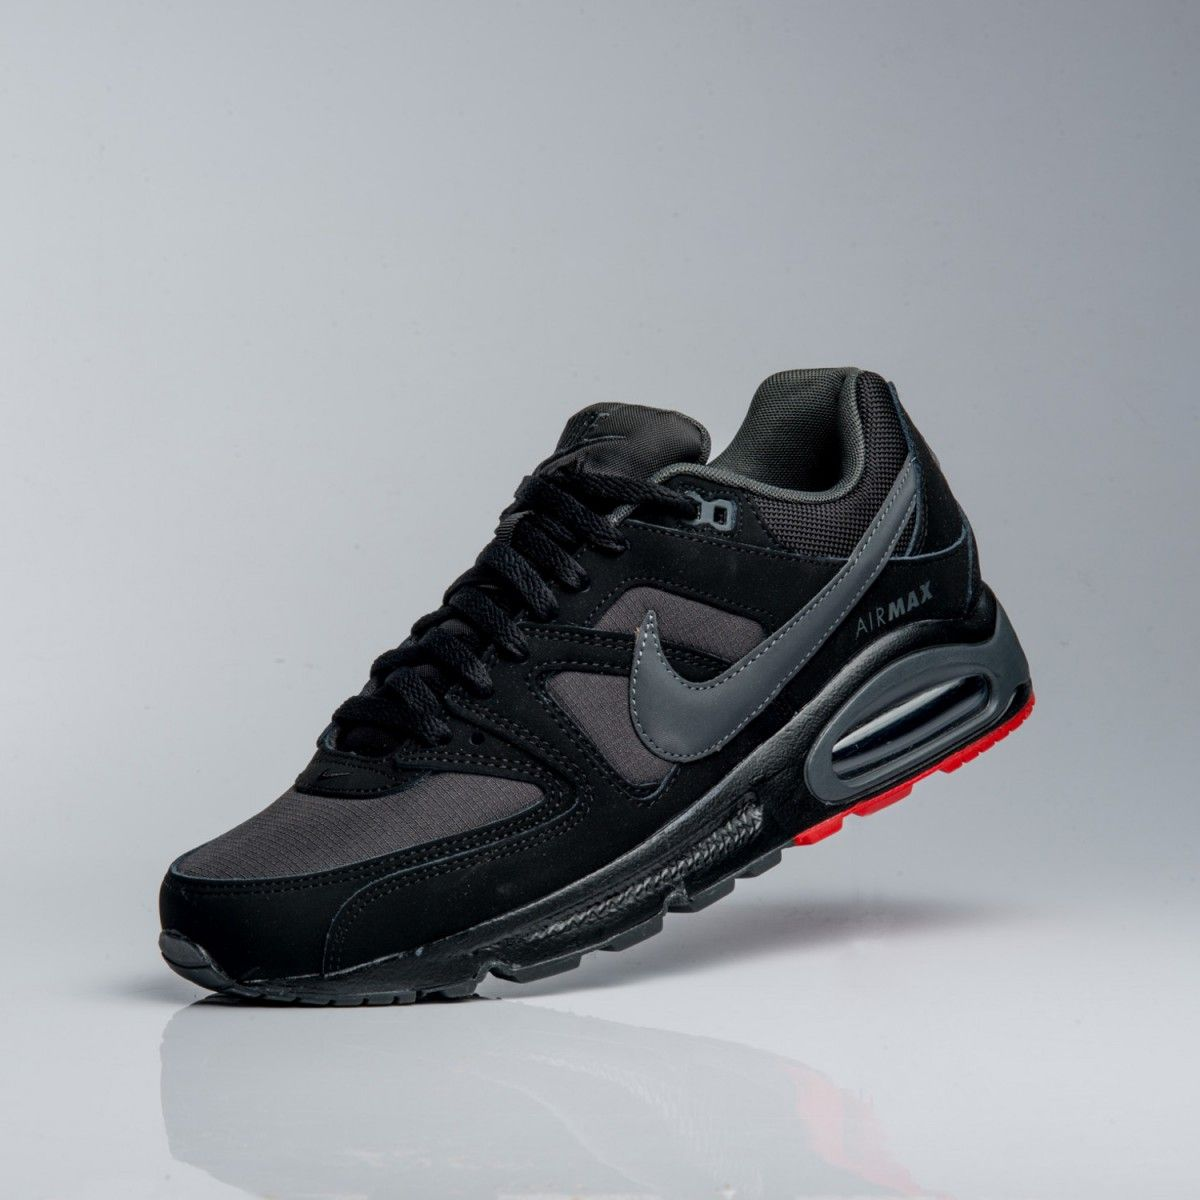 the best attitude 42fd4 54582 ZAPATILLAS NIKE AIR MAX COMMAND - Moda - Zapatillas - Hombre